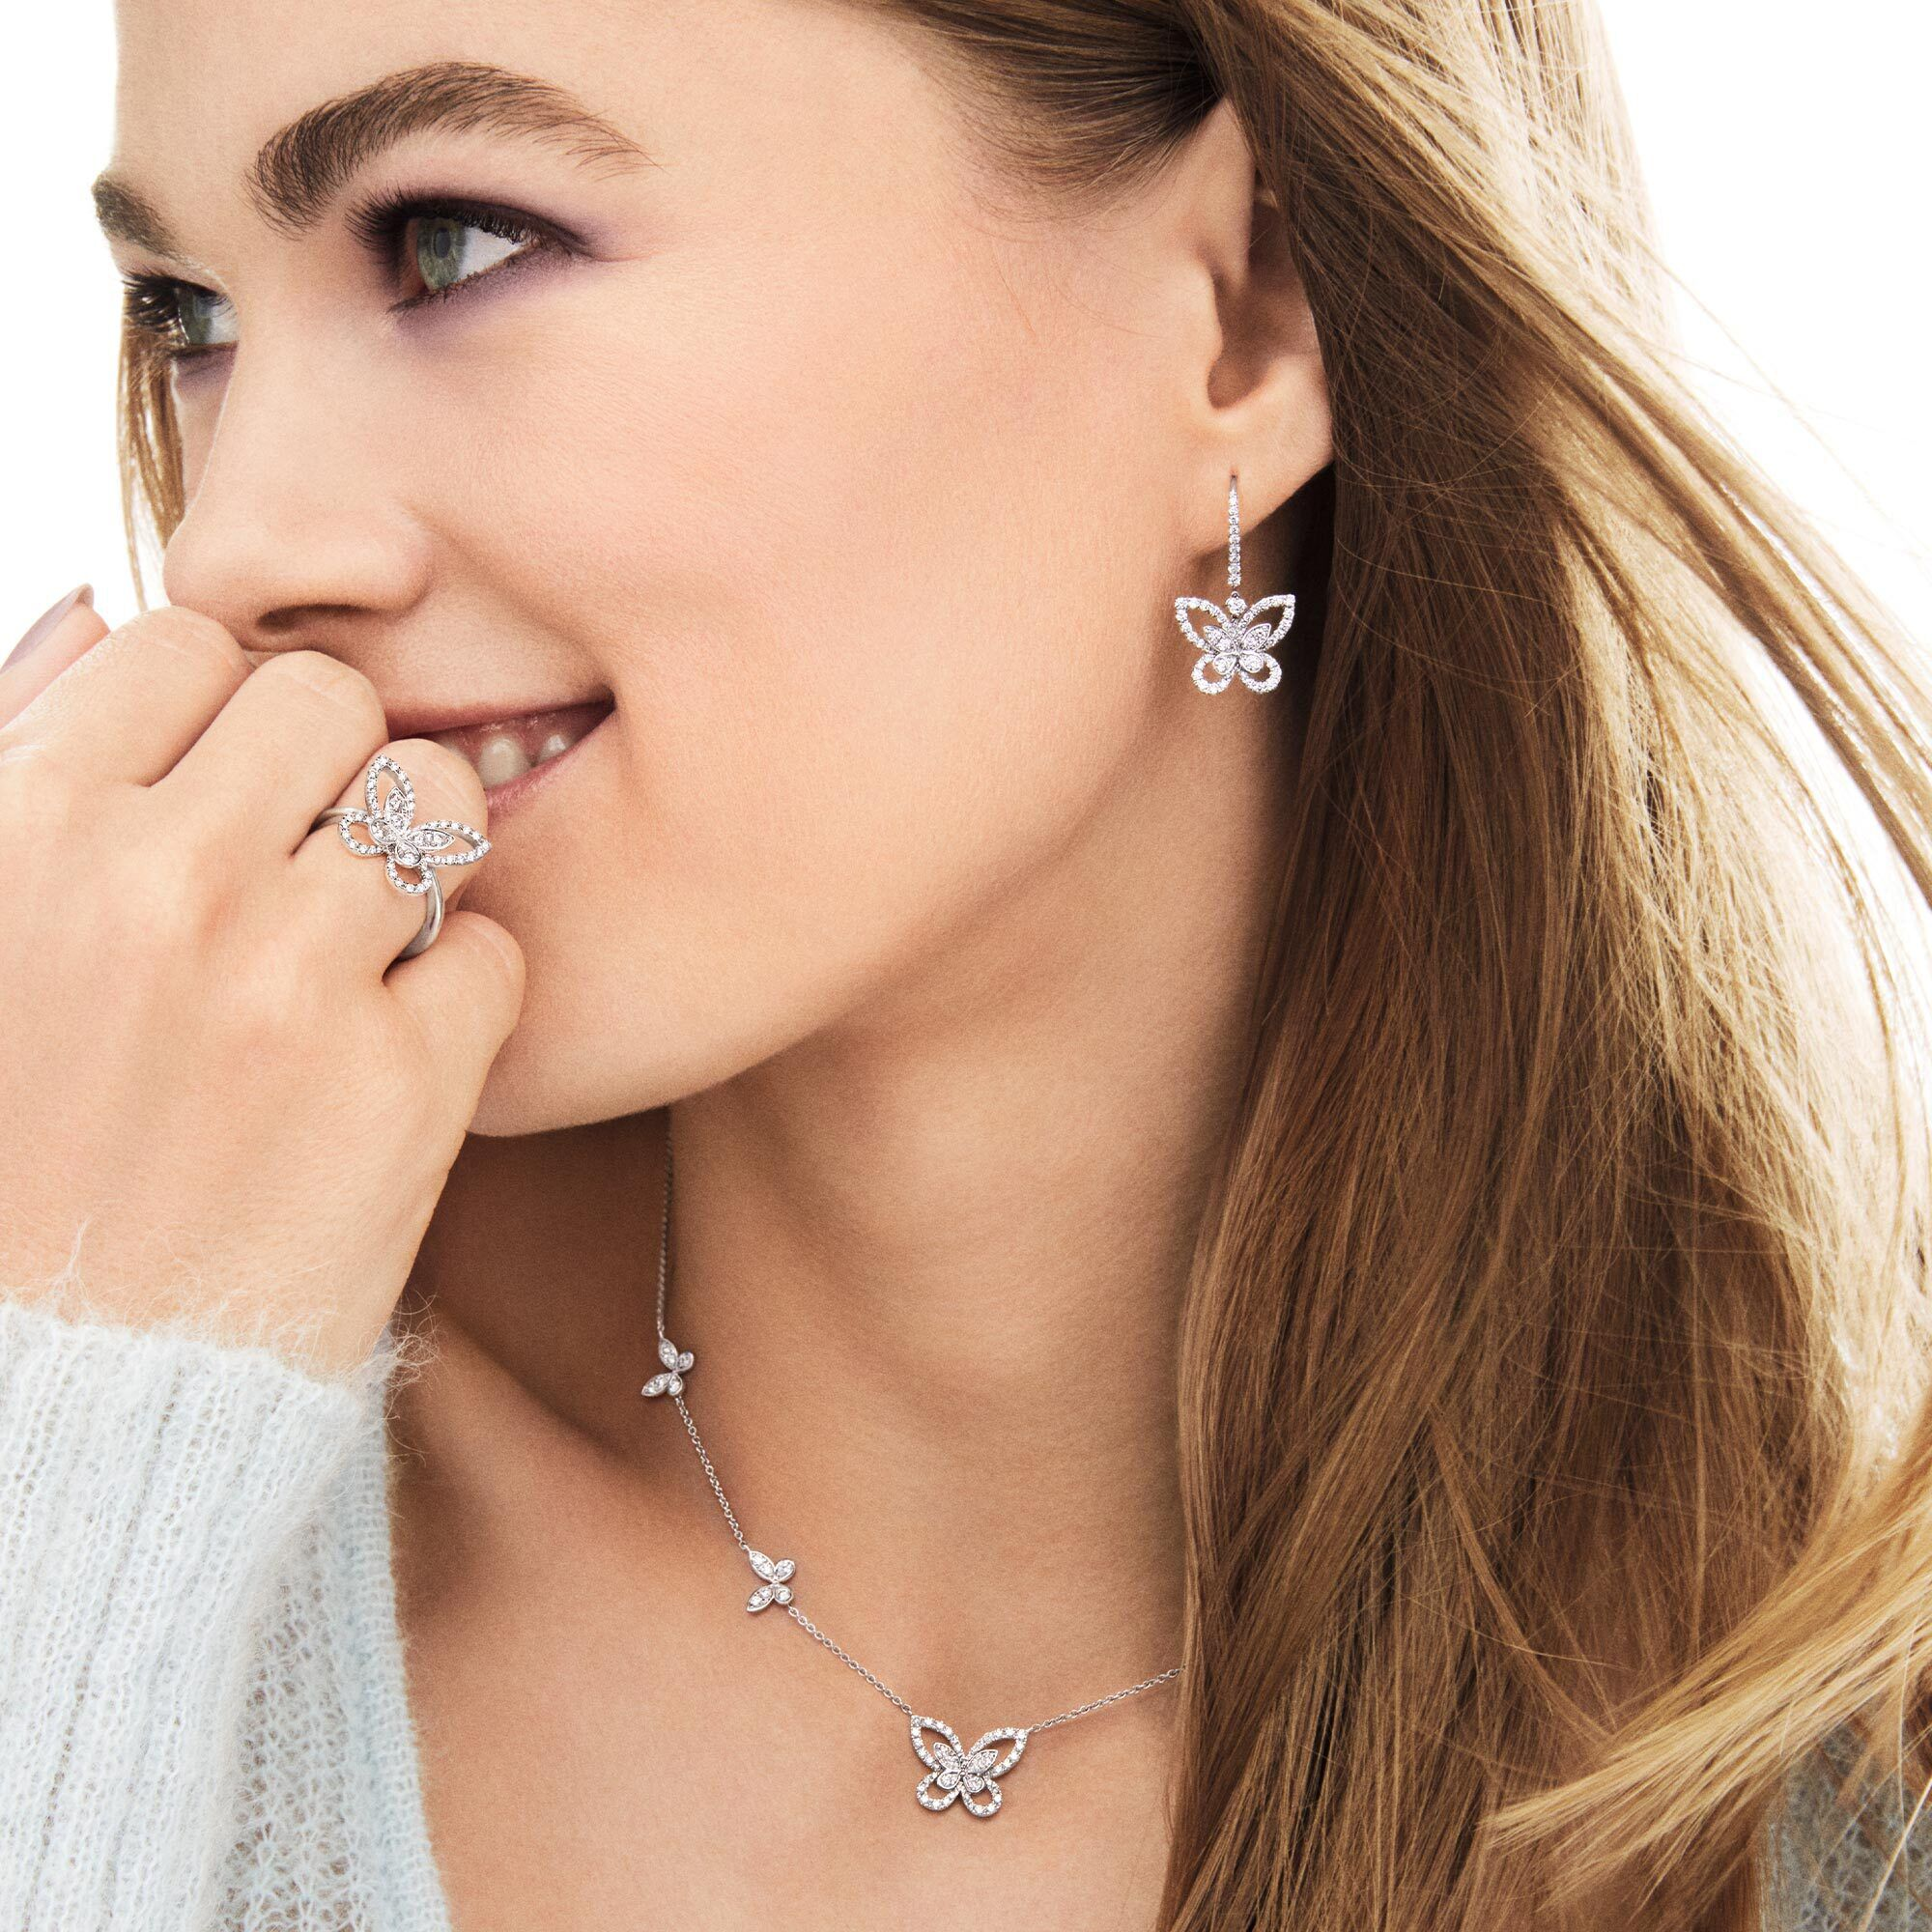 Close up of a model wearing the Graff Butterfly Silhouette jewellery collection diamond earrings, pendant and ring